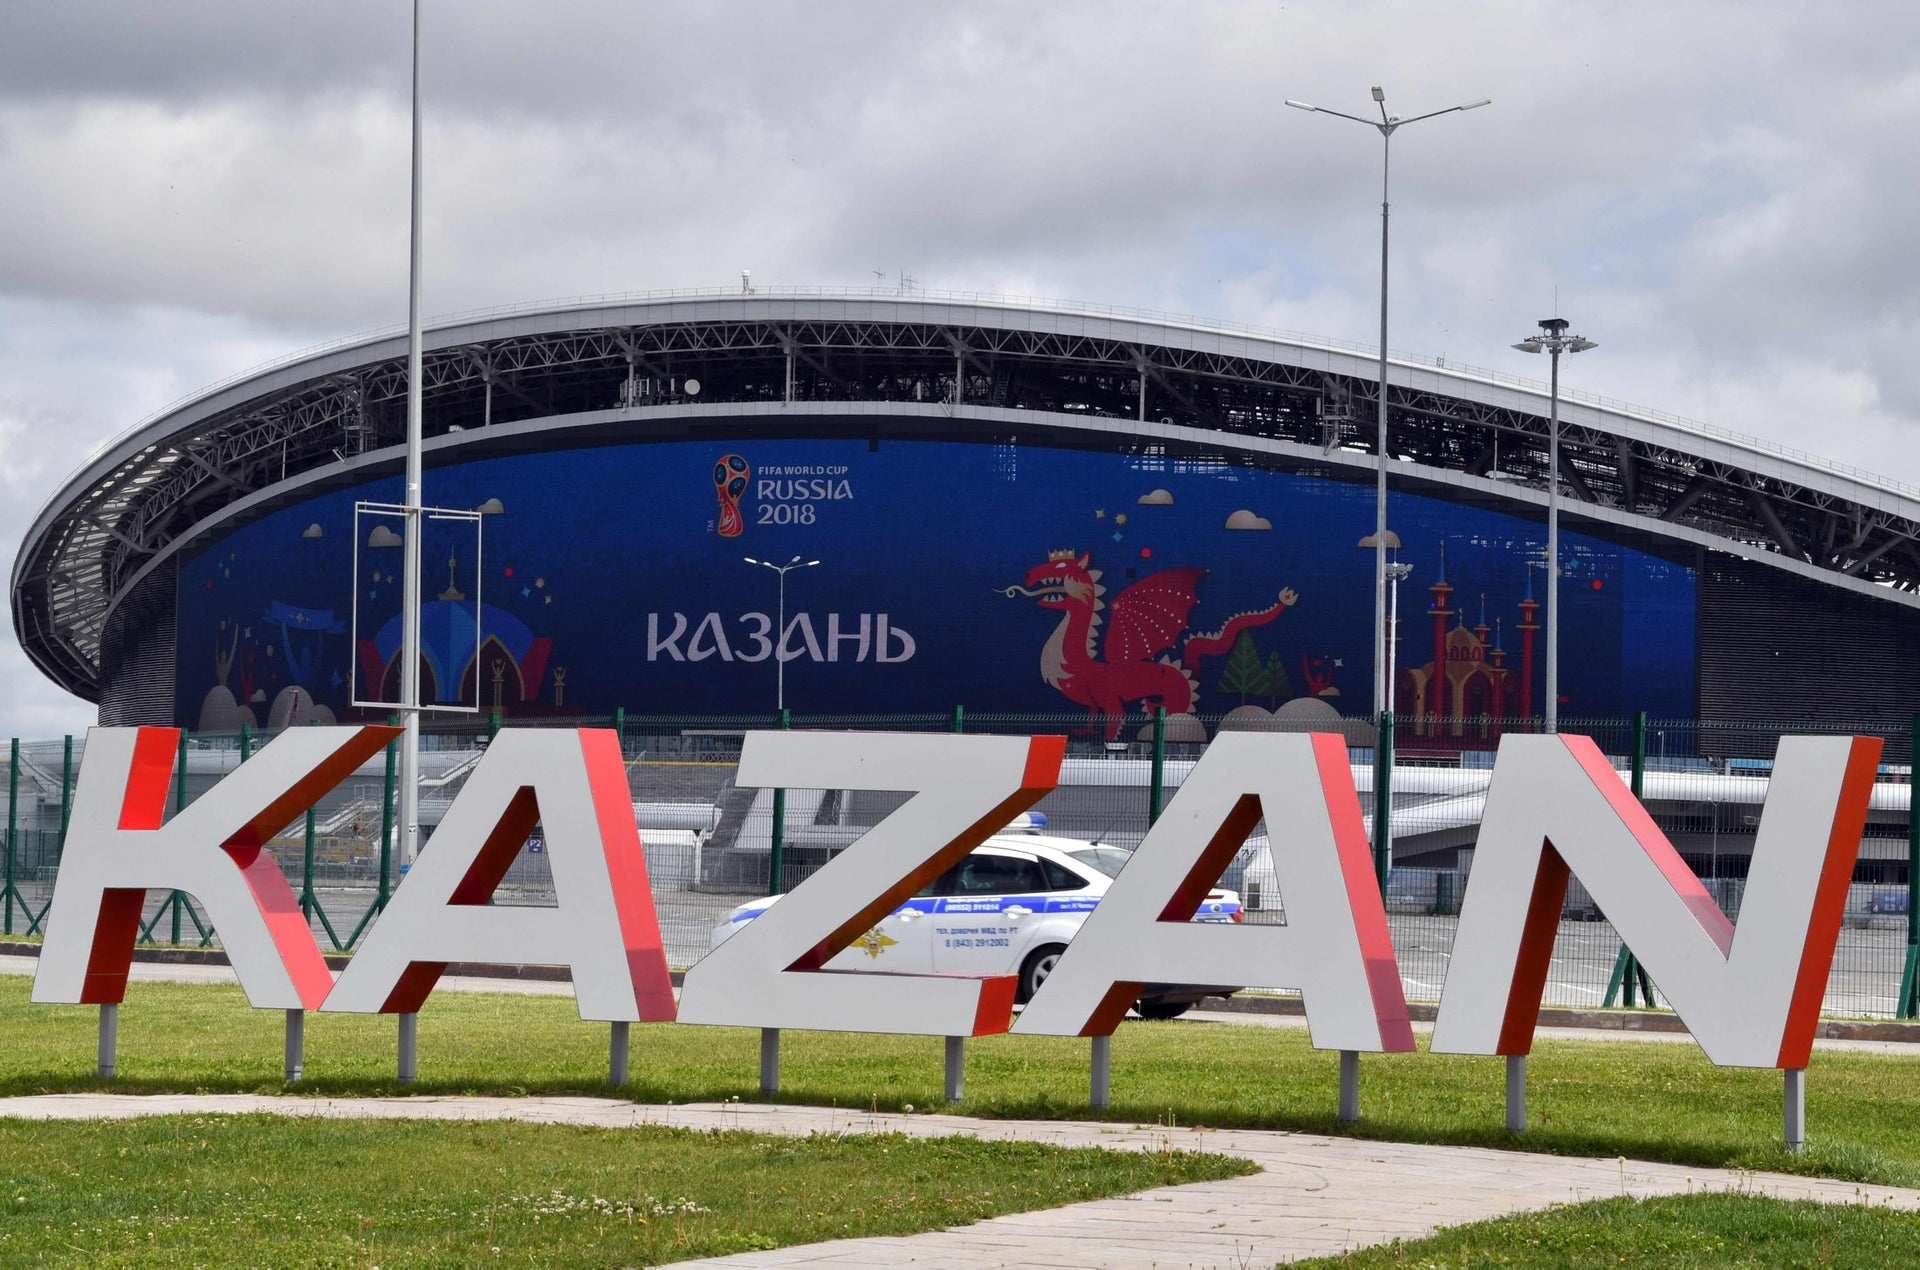 The Kazan Arena stadium is one of 12 stadiums being used for the World Cup in Russia, but it's definitely the only one where the field was previously converted into two swimming pools.